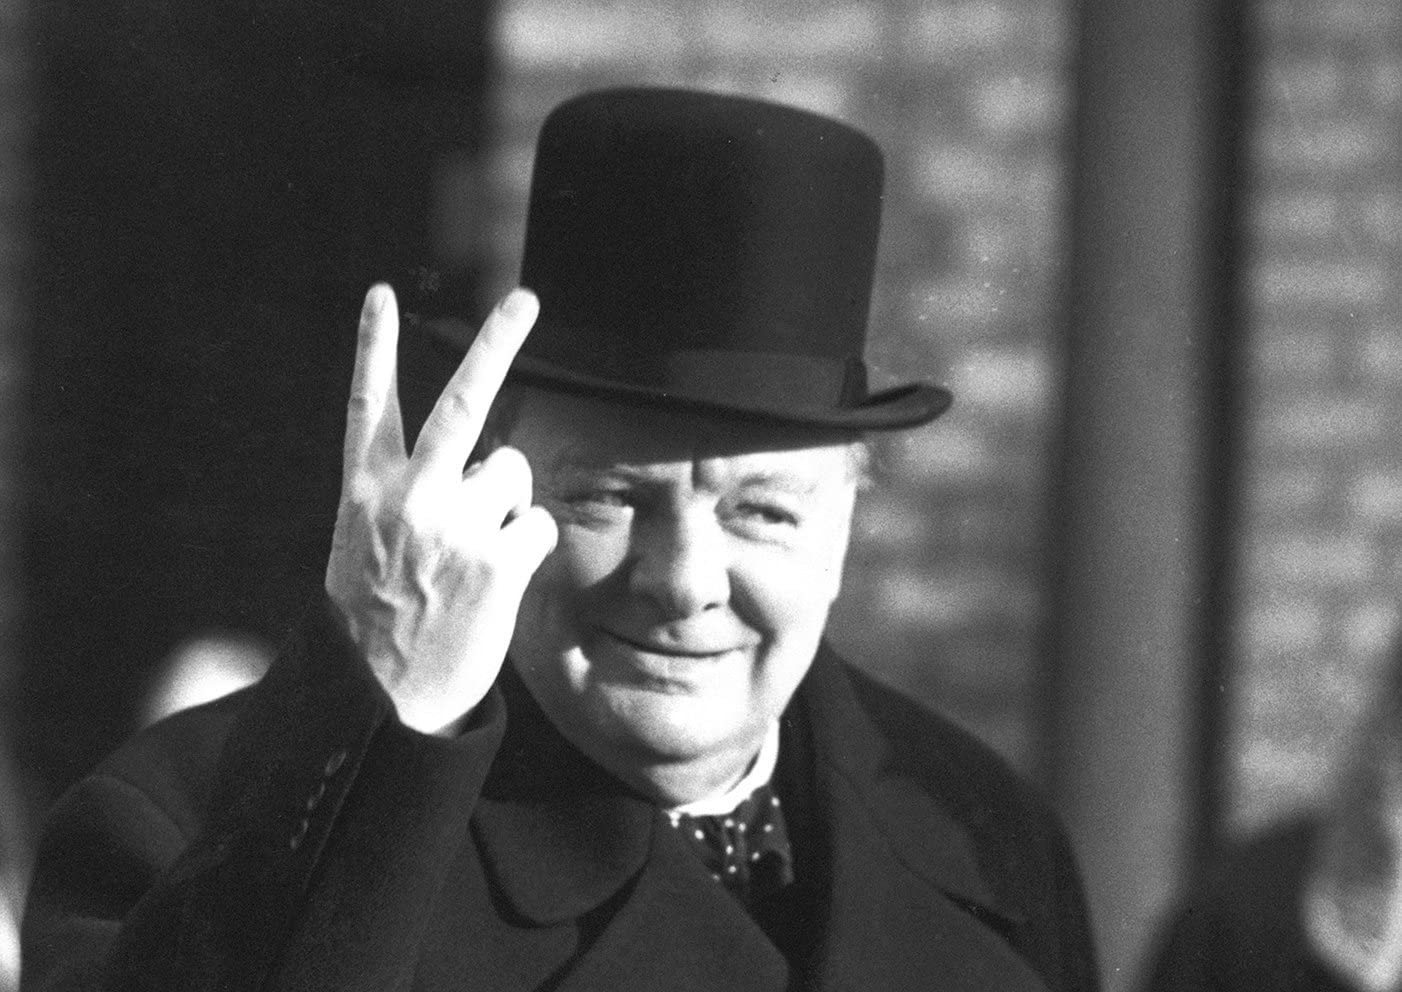 WINSTON CHURCHILL V FOR VICTORY WORLD WAR 2 POSTER (A2(594X420MM)): Amazon.co.uk: Kitchen & Home